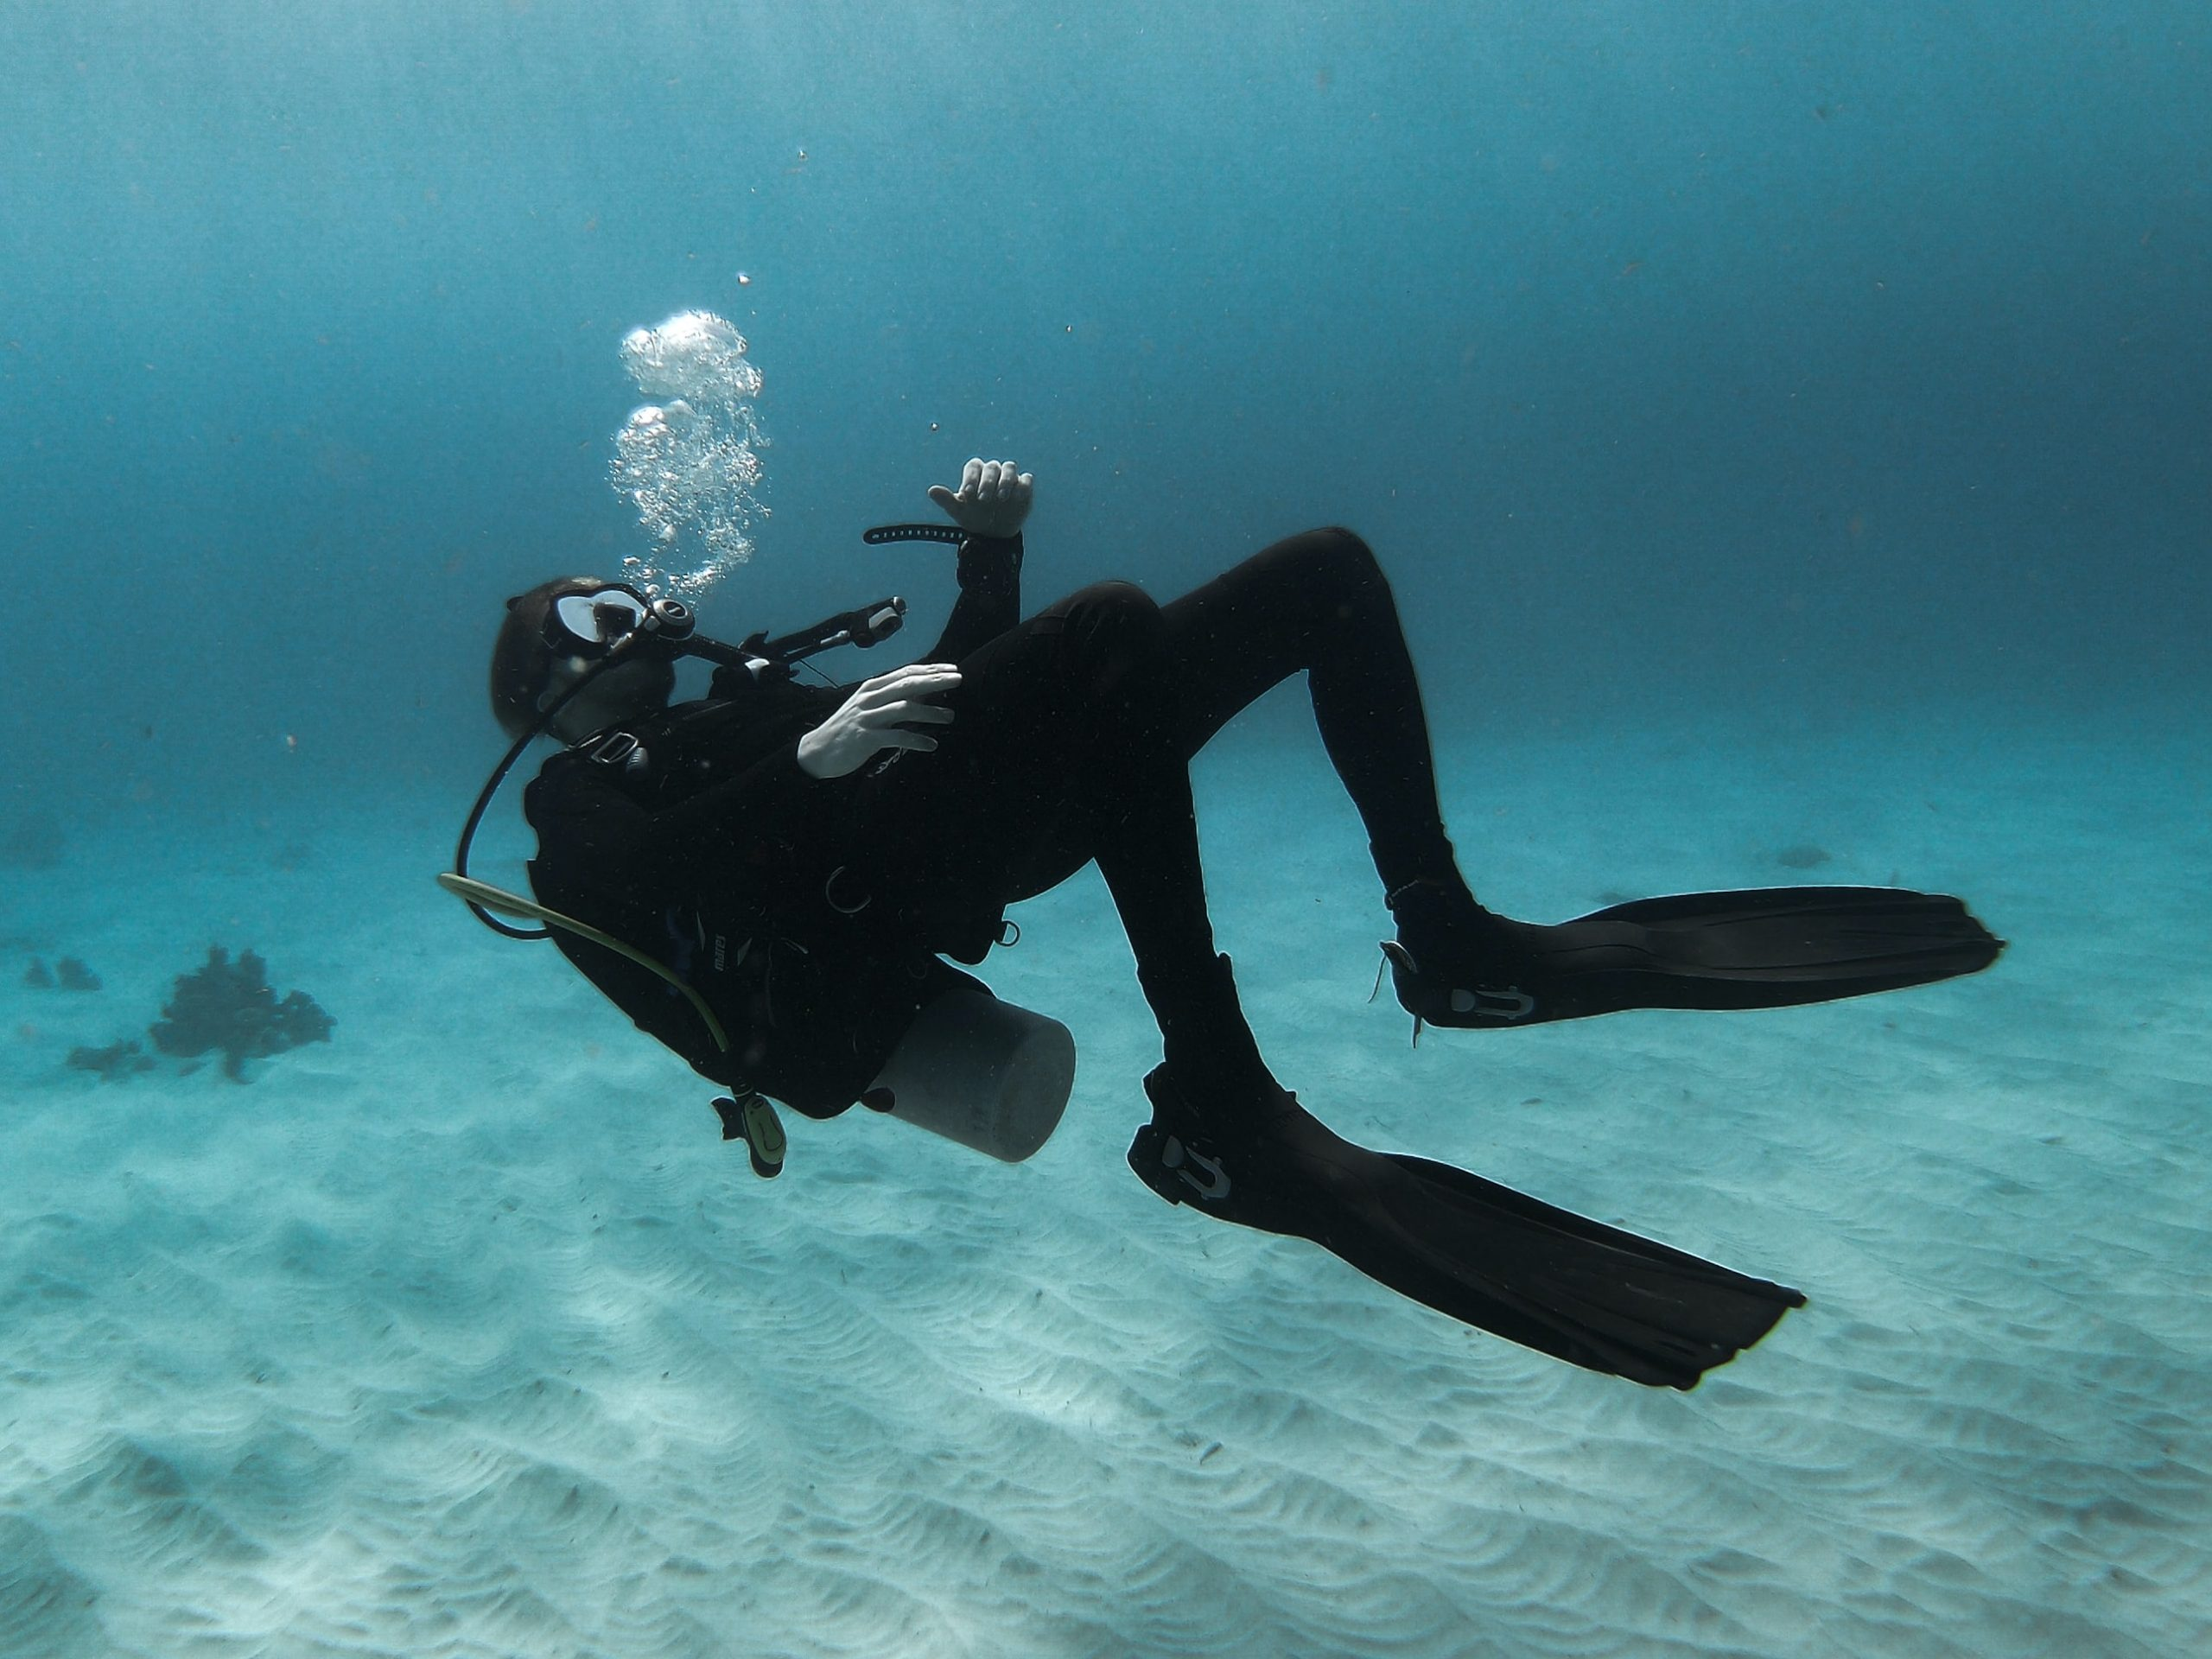 Scuba Diving with Fins